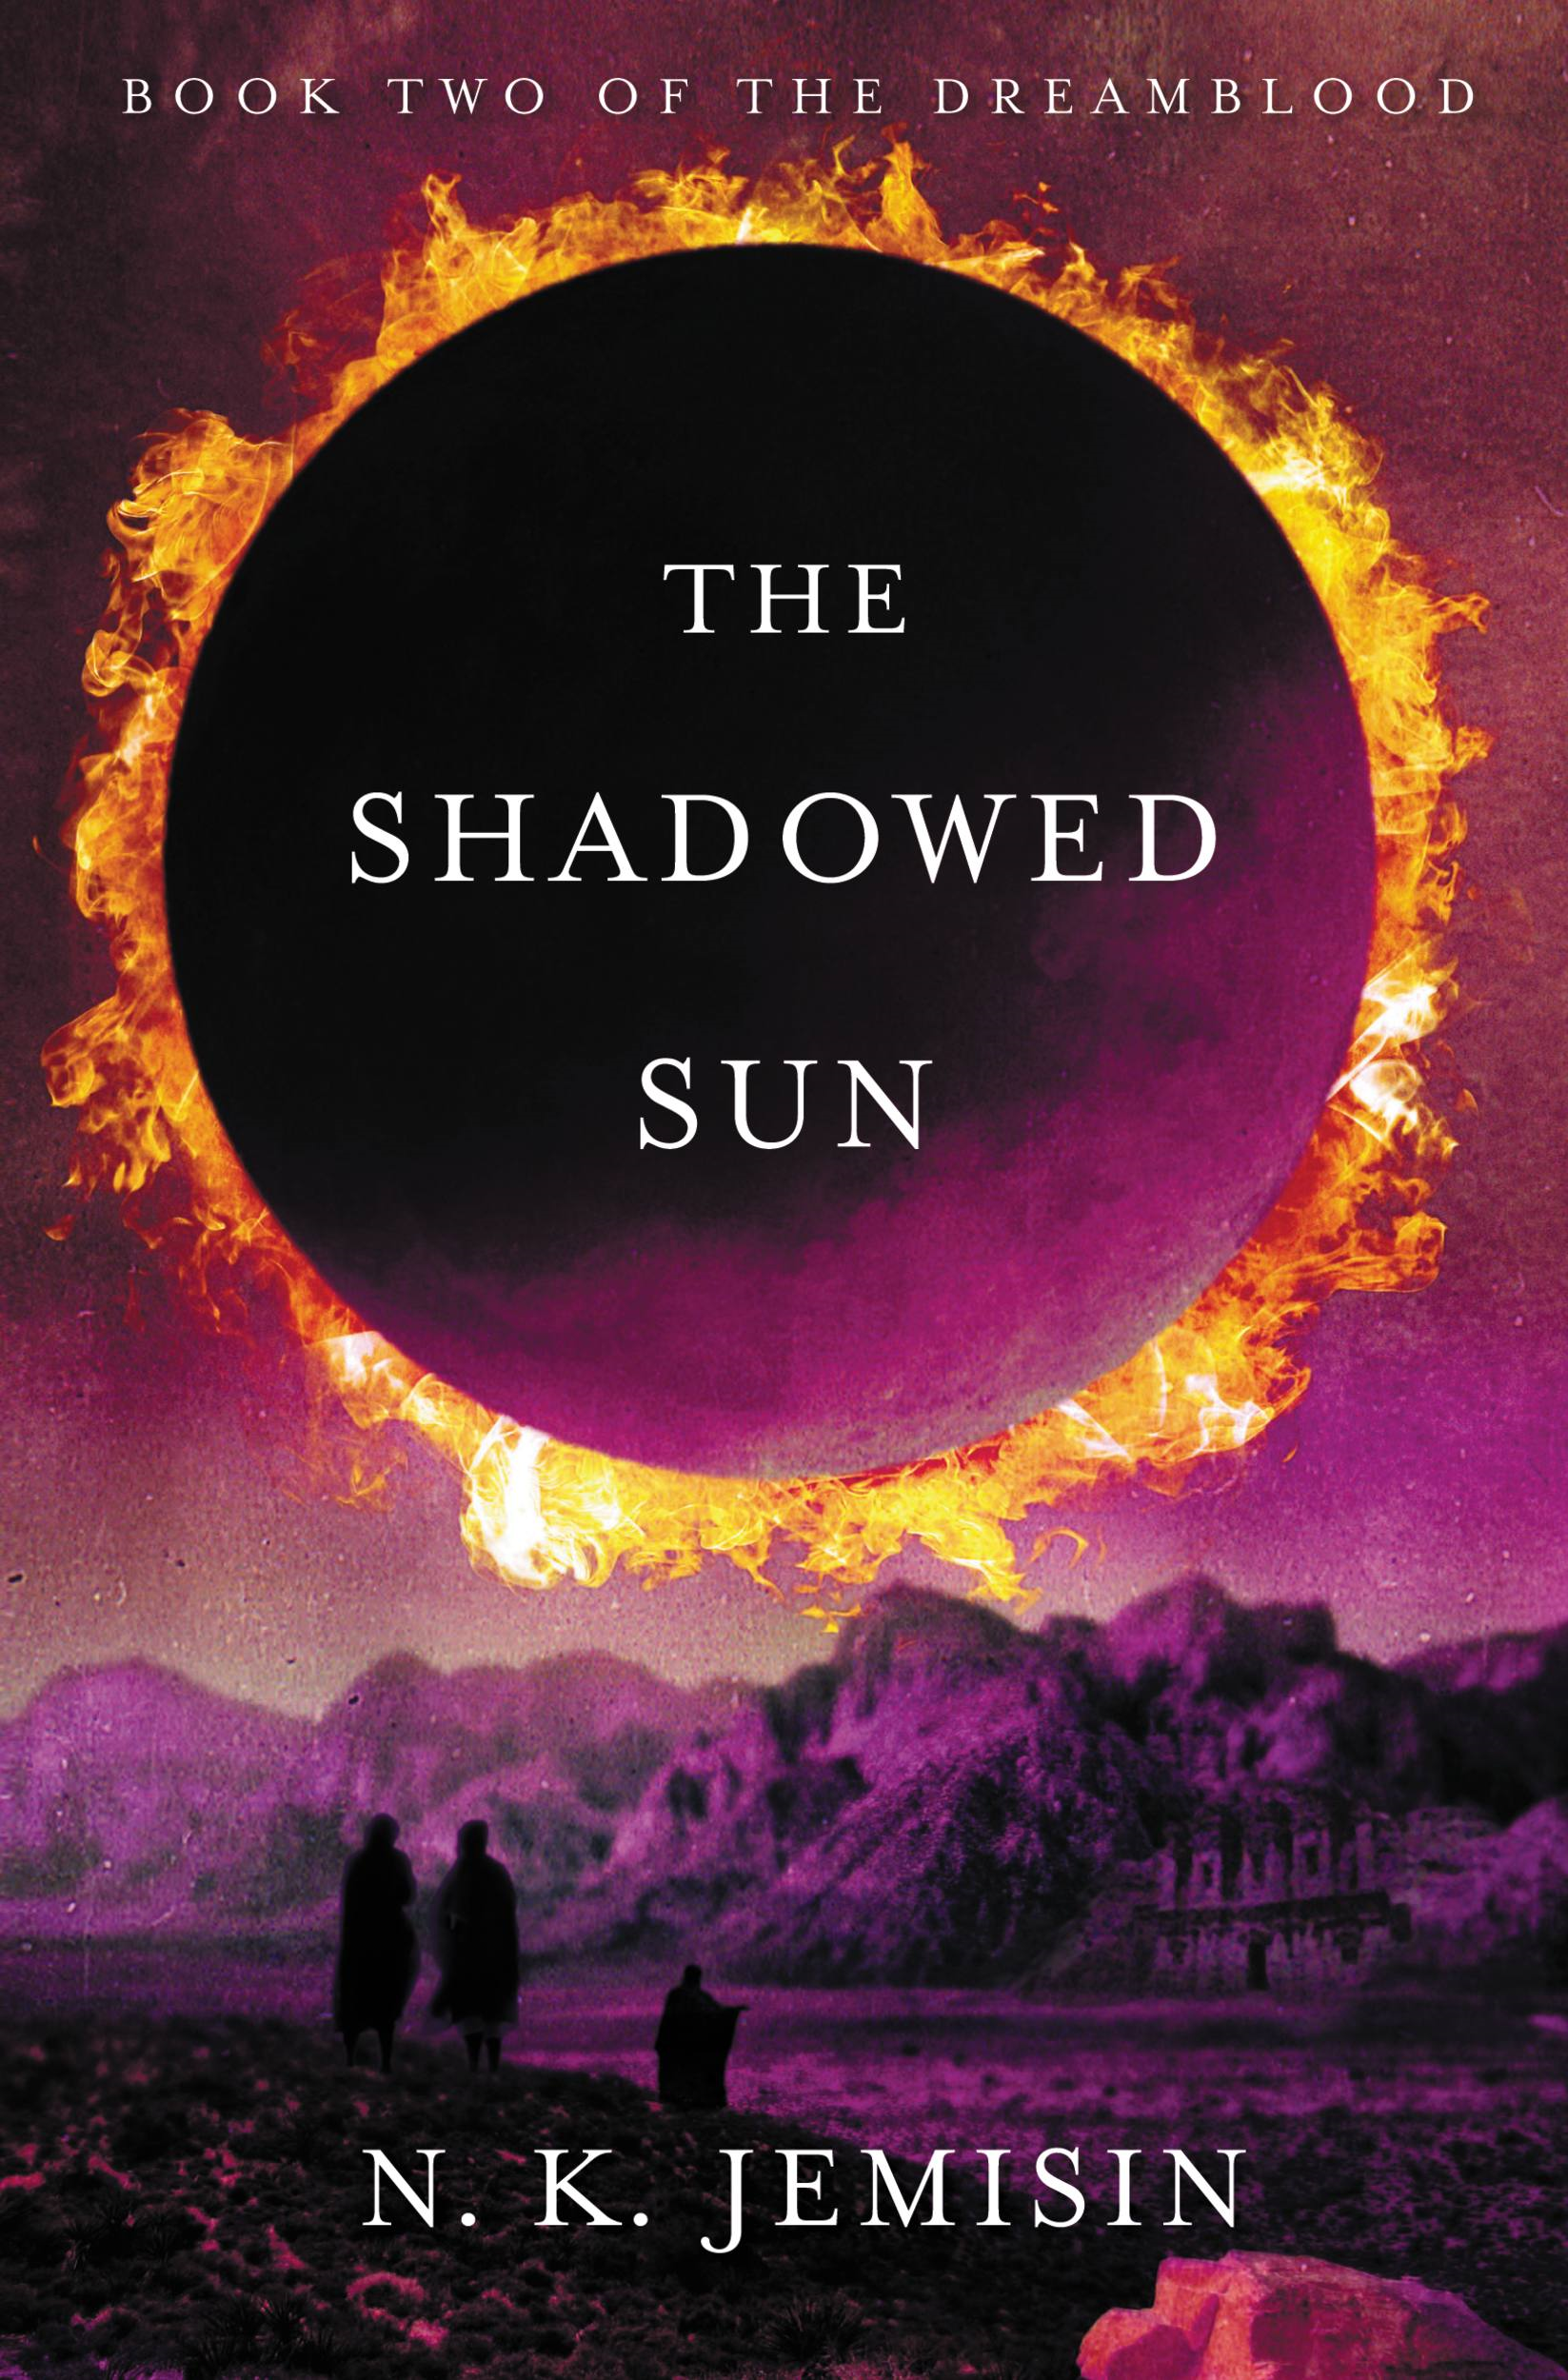 The Shadowed Sun By: N. K. Jemisin